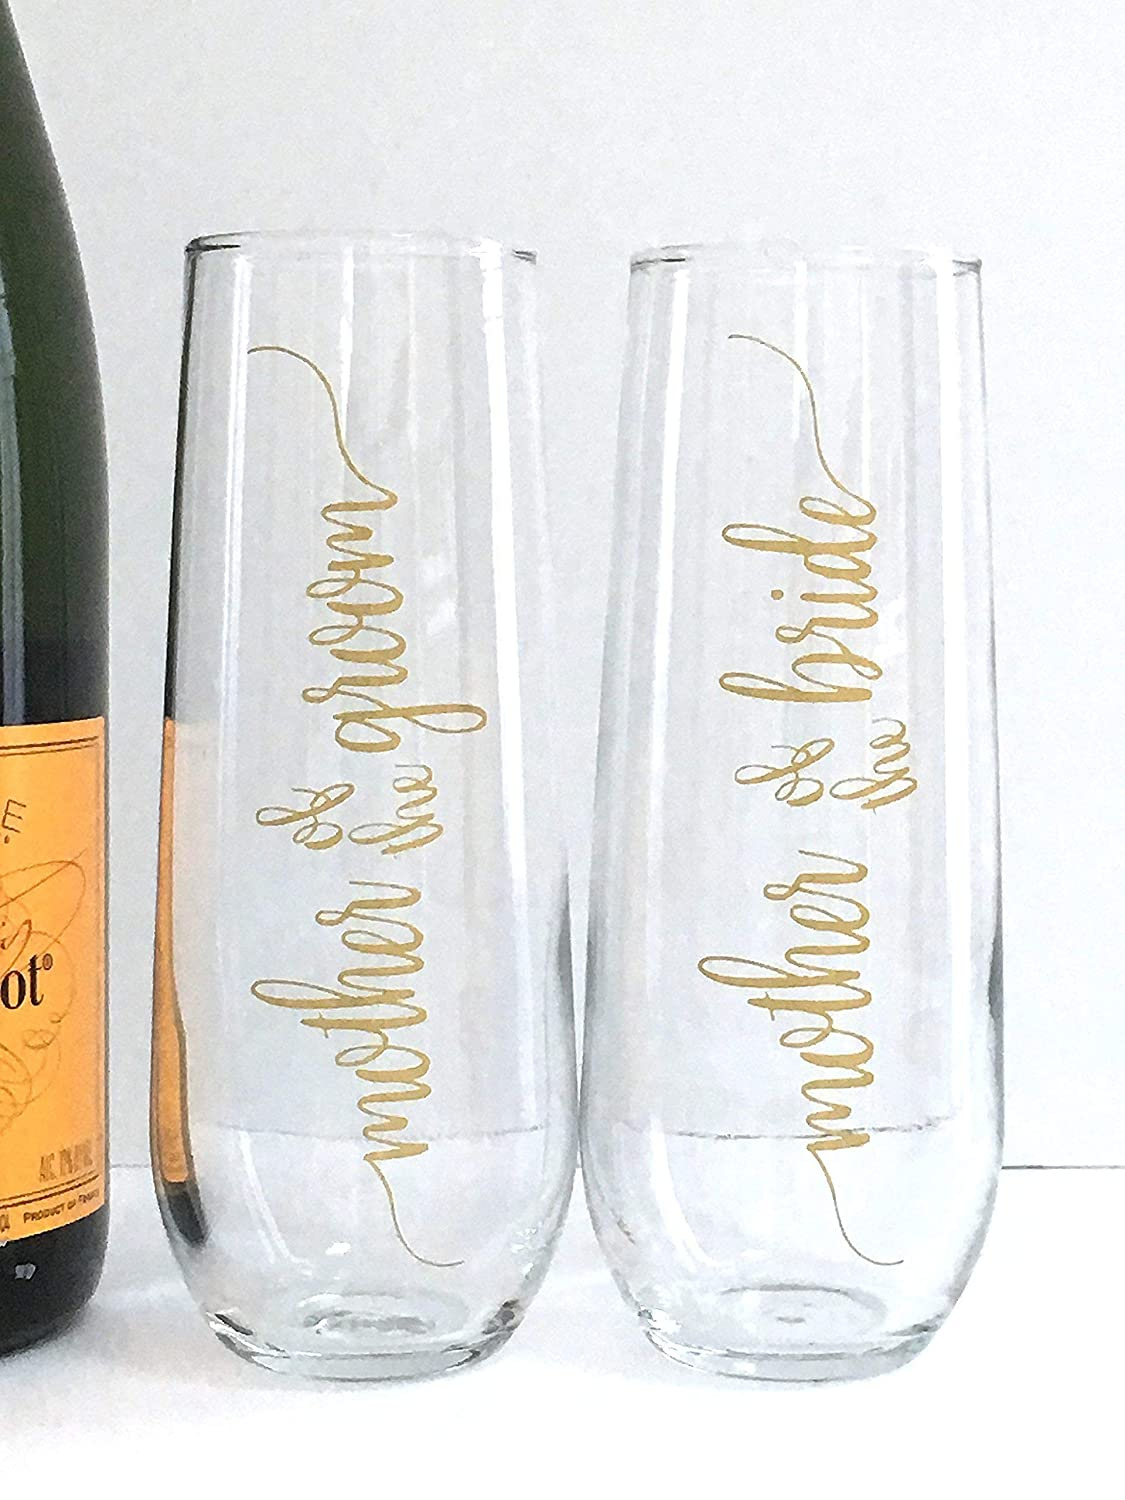 Mother of the Bride and Groom Champagne Flutes - Wedding Toast Glasses - Set of 2